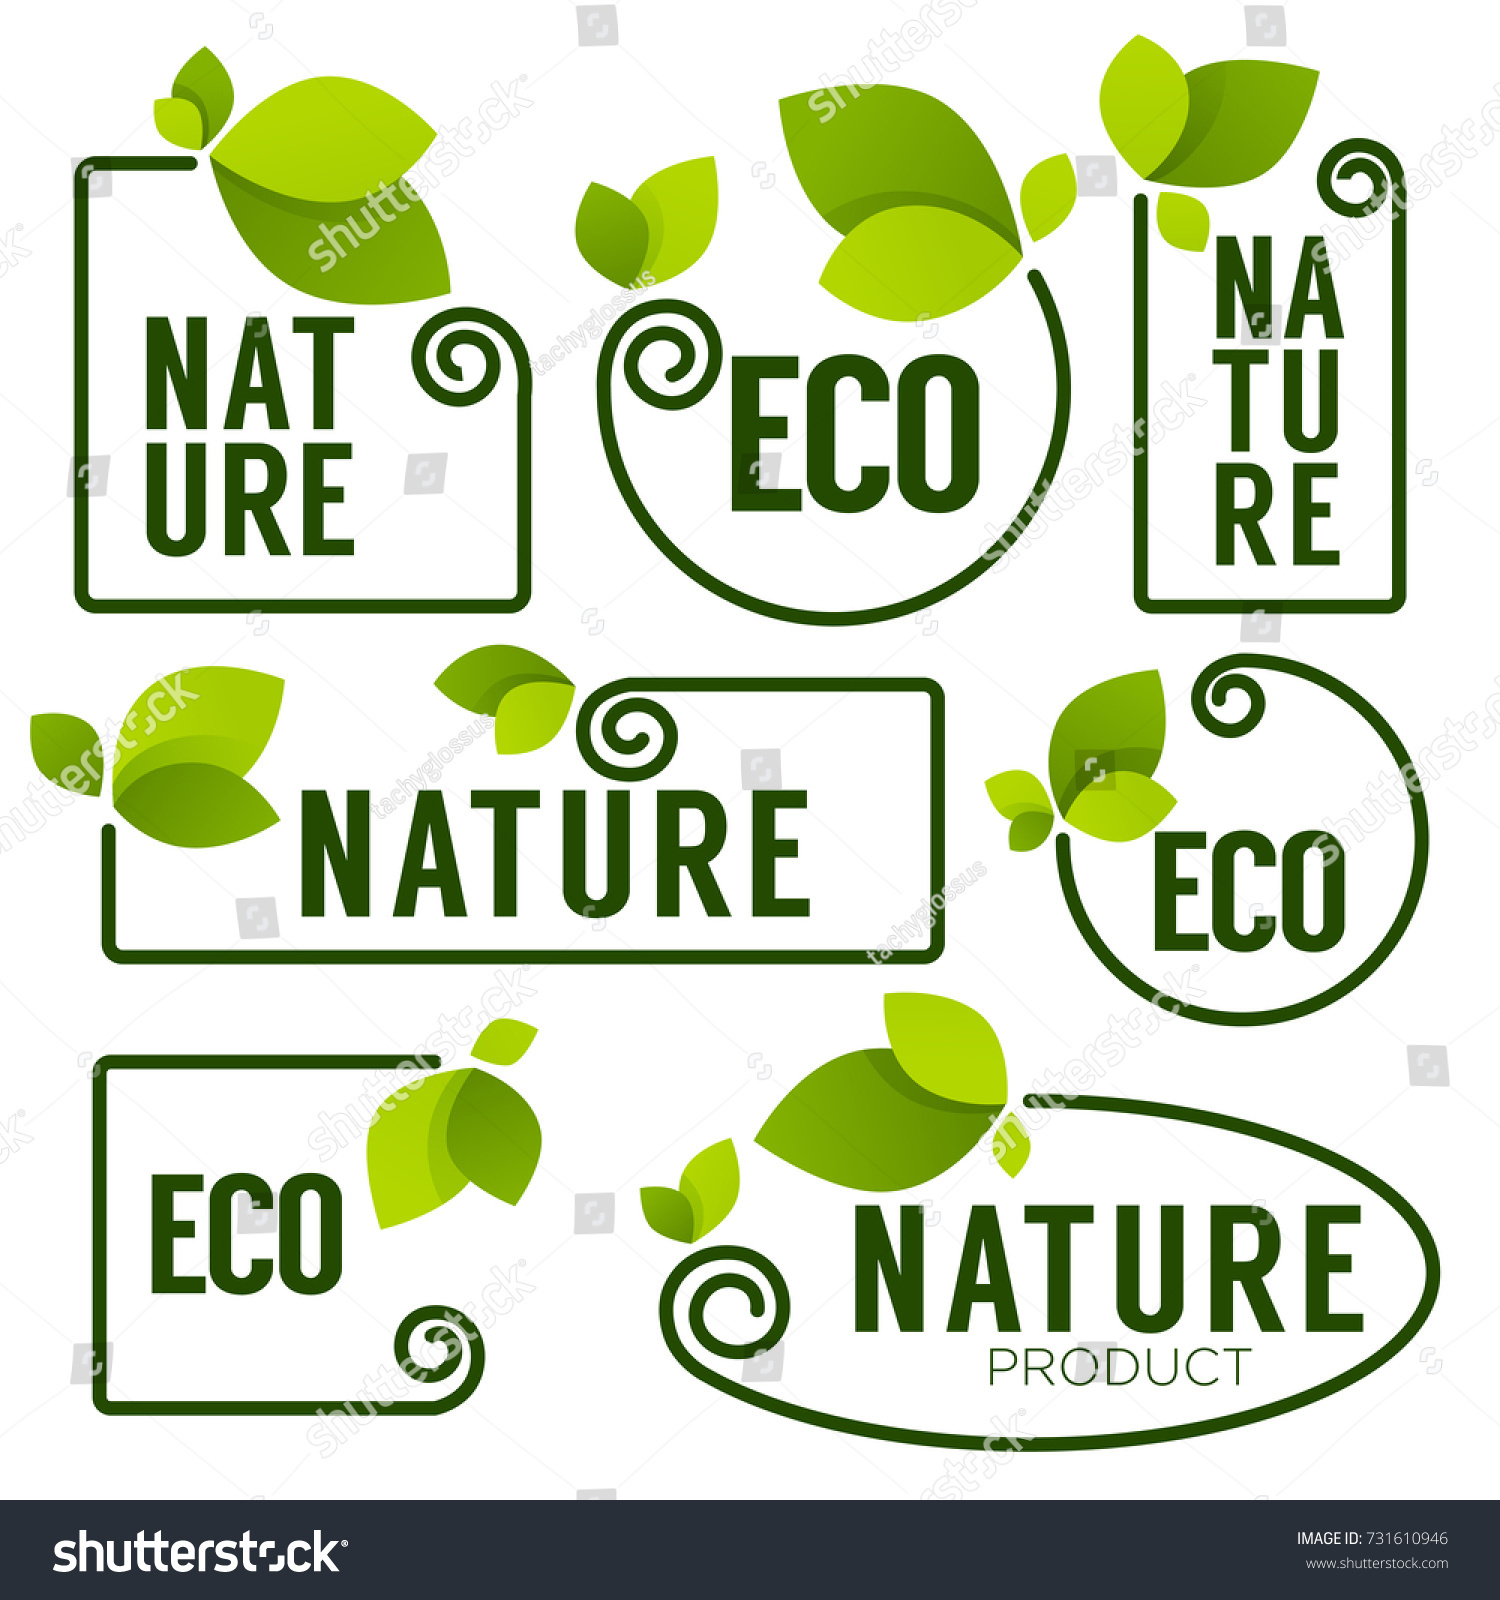 Eco Nature Green Fresh Leaves Emblems Stock Vector HD (Royalty Free ...